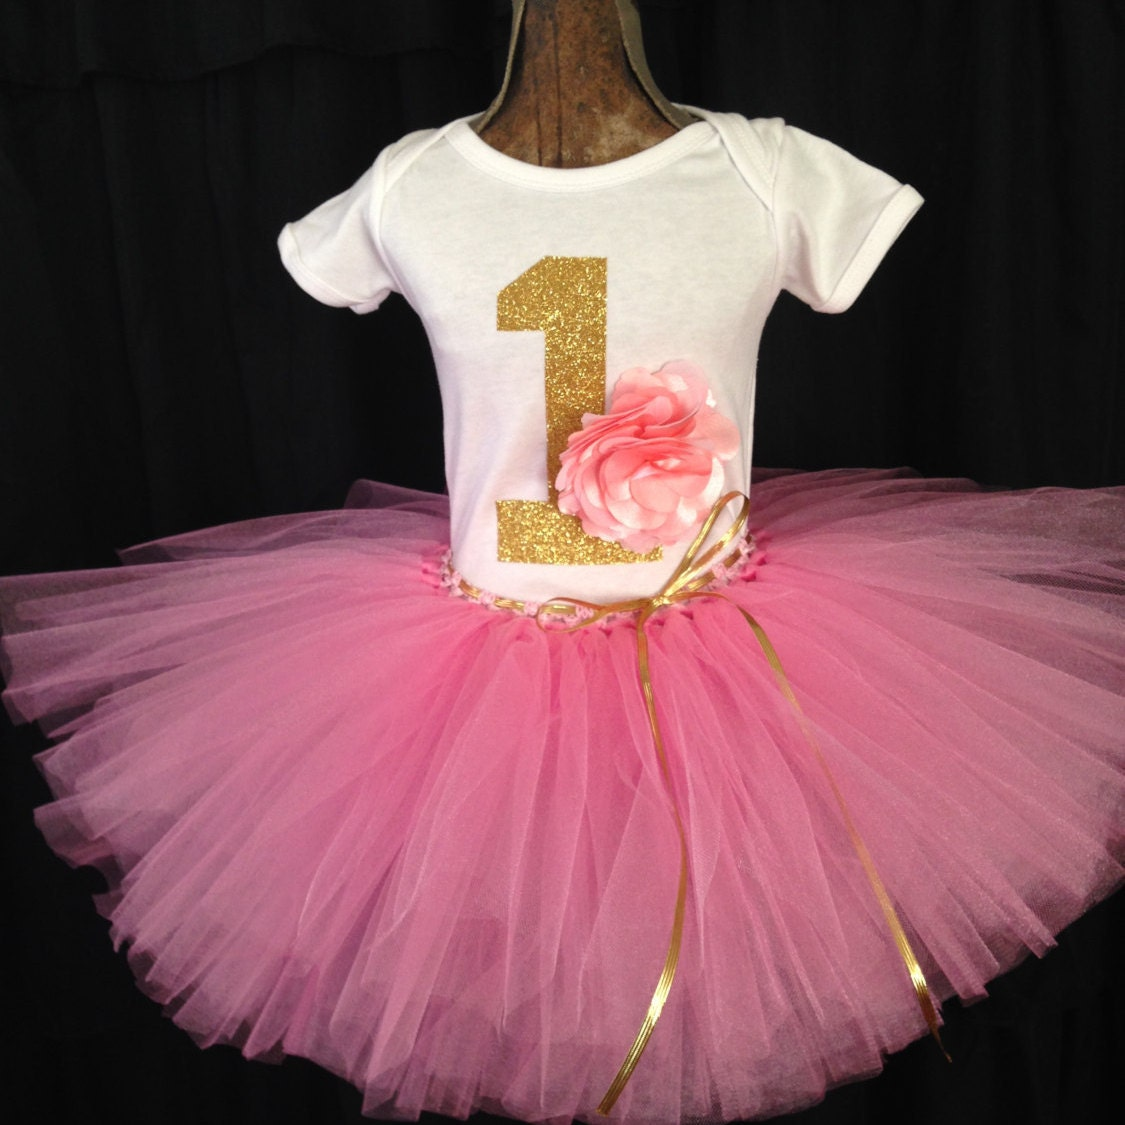 First Birthday Tutu Outfit Smash Cake Outfit Girl's